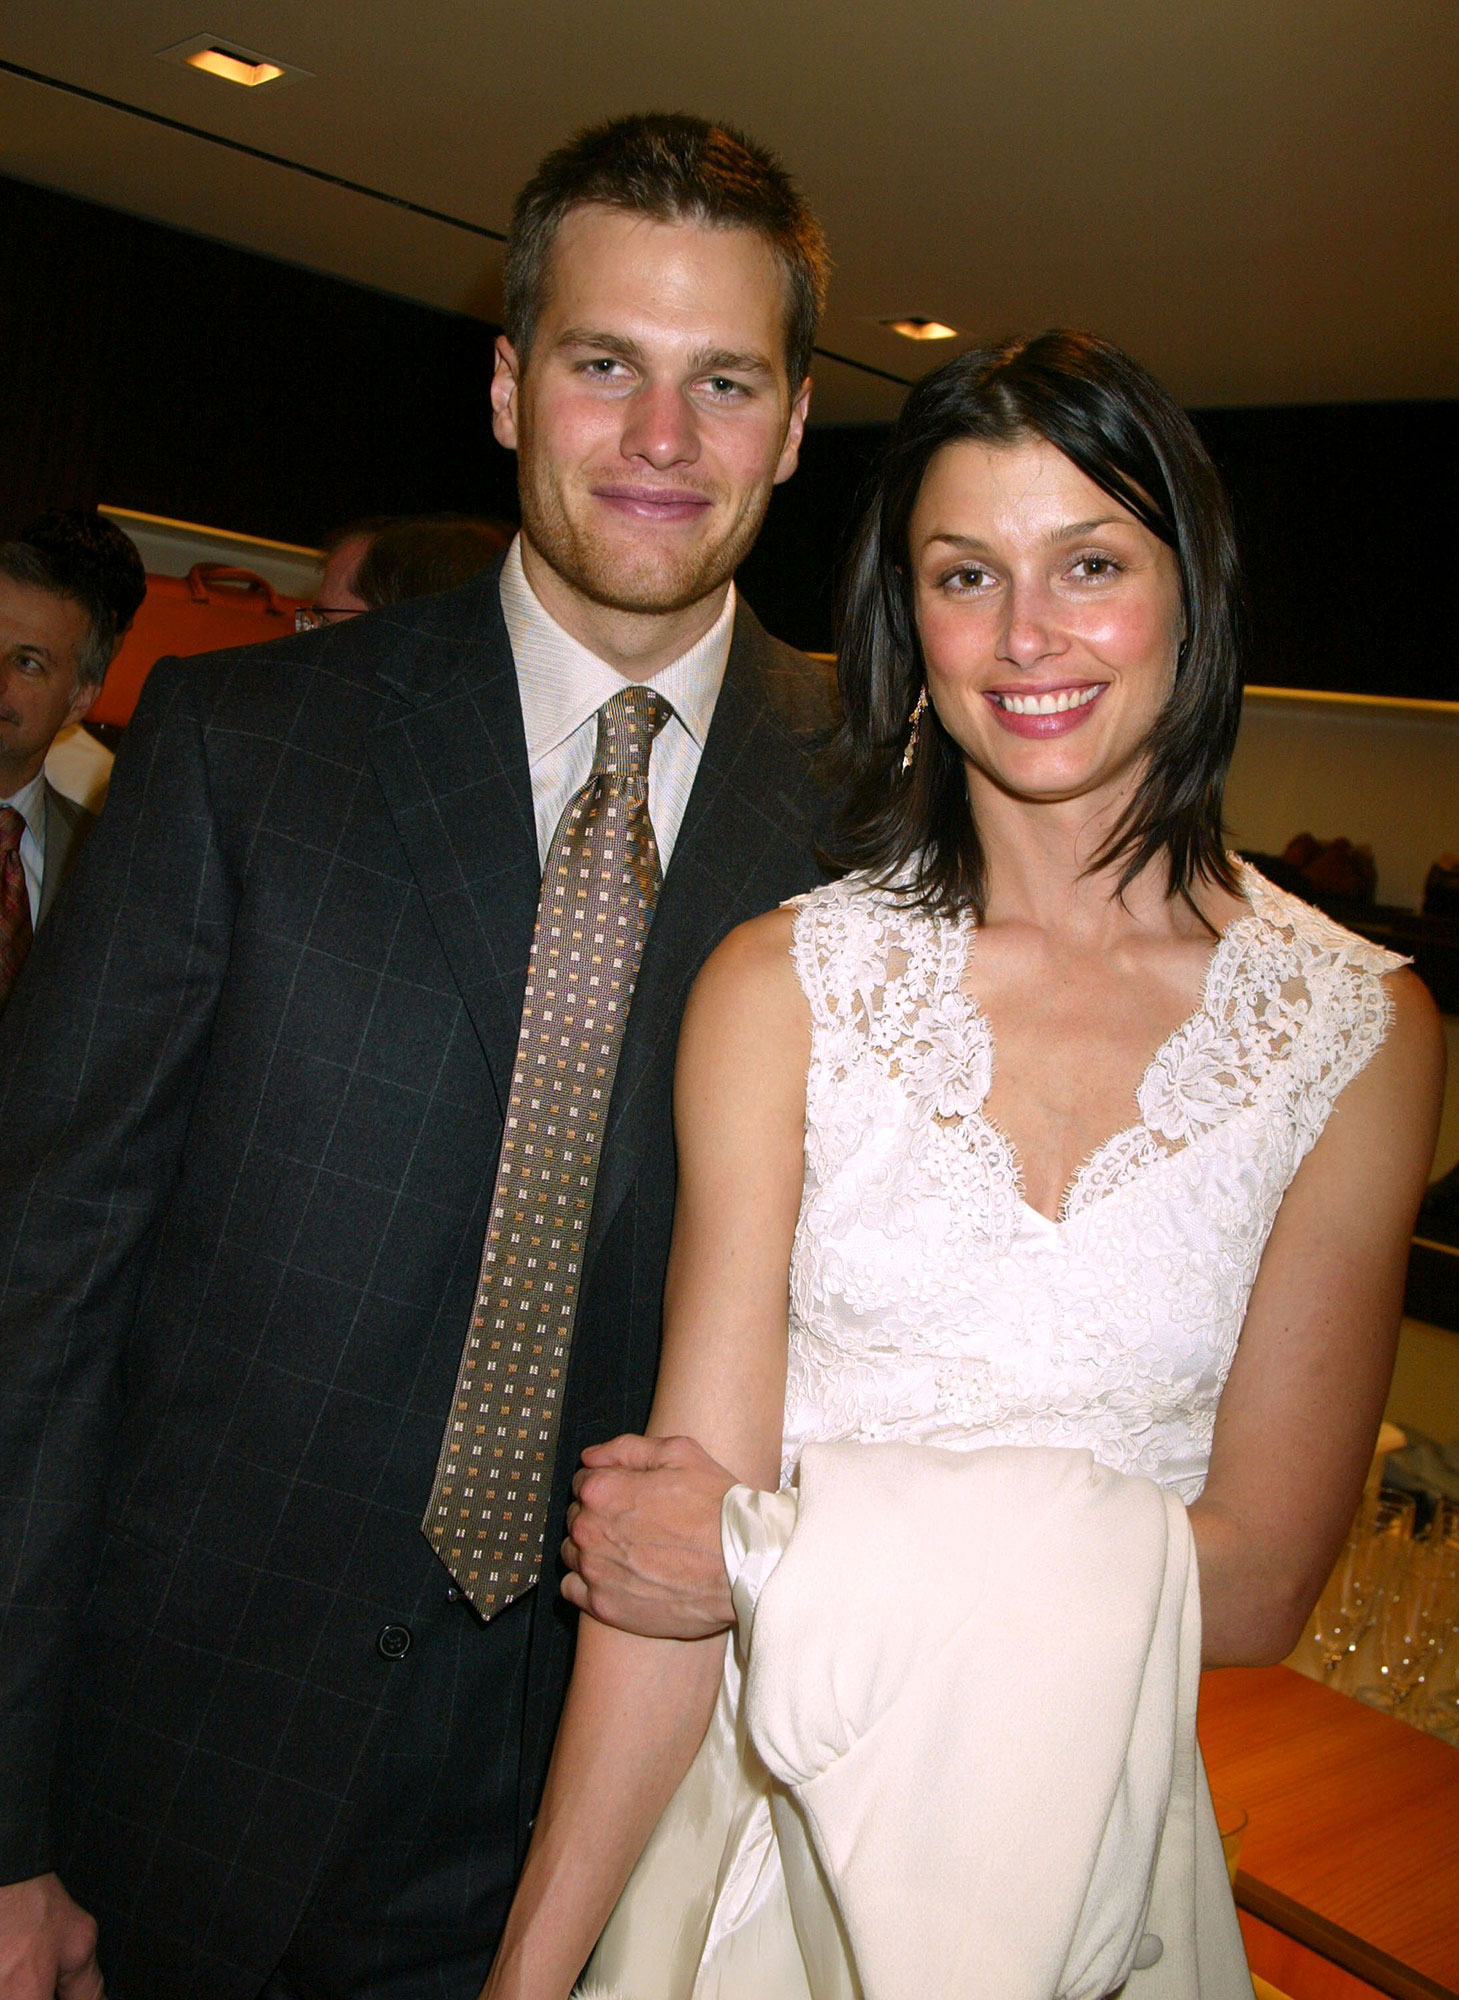 Look Back at Tom Brady and Bridget Moynahan's Rocky Relationship - Tom Brady, Quarterback for the New England Patriots and Bridget Moynahan (Photo by Gregory Pace/FilmMagic)